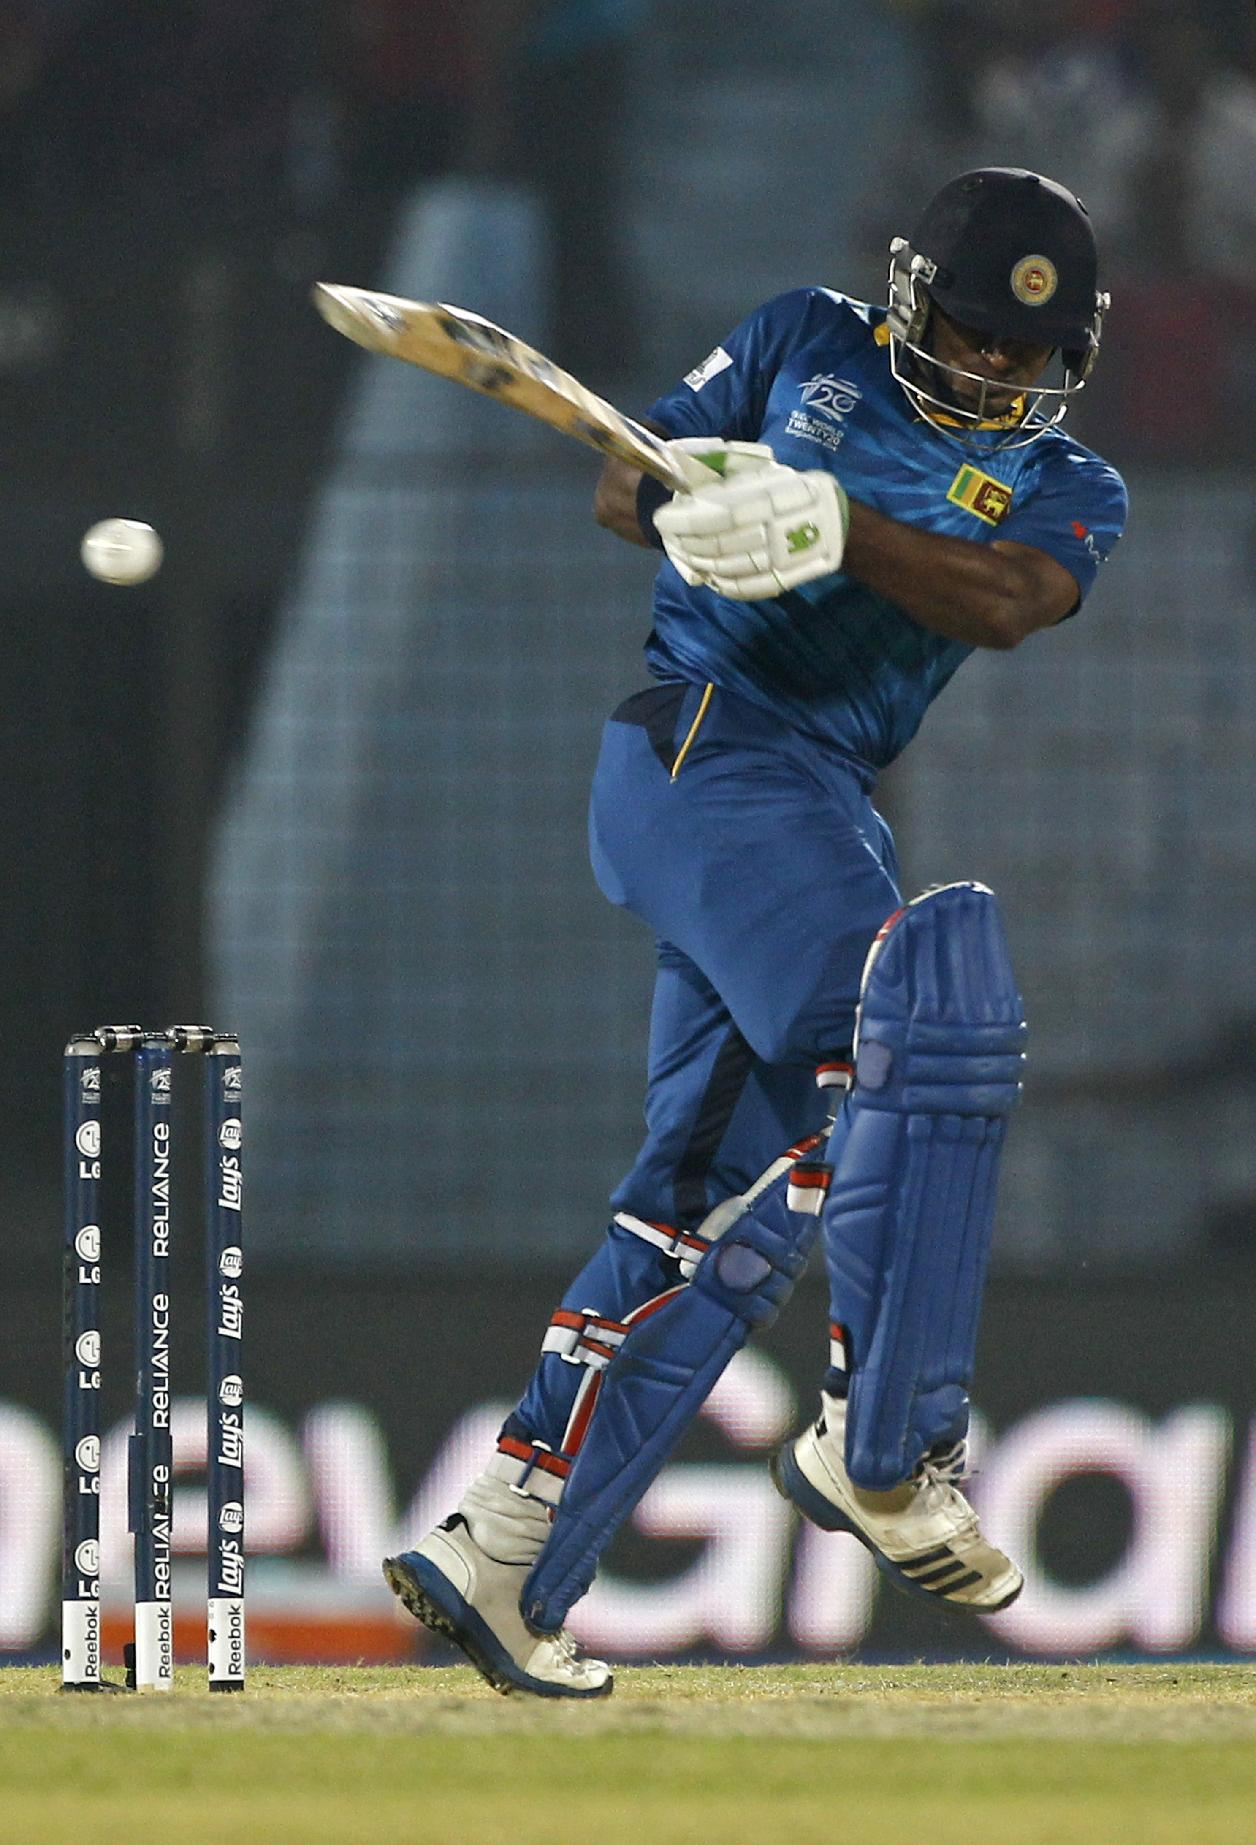 Sri Lanka's Kusal Perera plays a shot during their ICC Twenty20 Cricket World Cup match against England in Chittagong, Bangladesh, Thursday, March 27, 2014